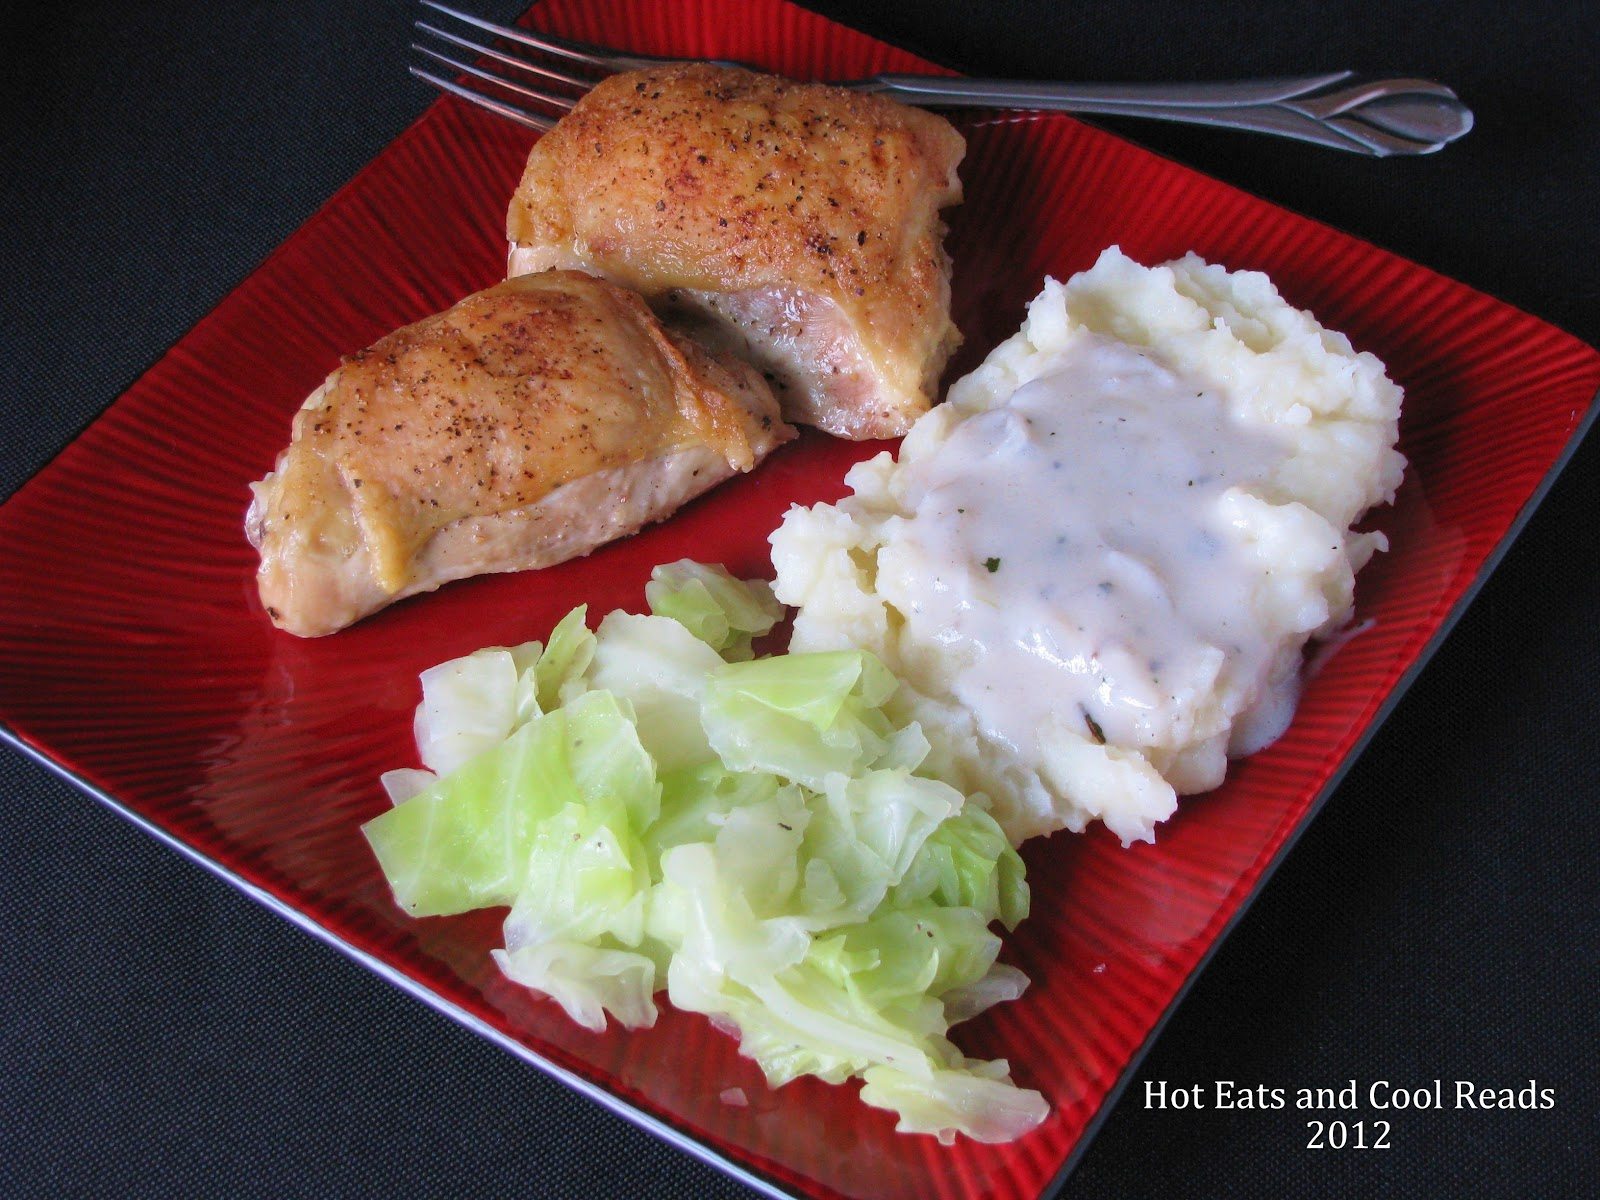 Hot Eats and Cool Reads: Classic Crispy Baked Chicken Recipe